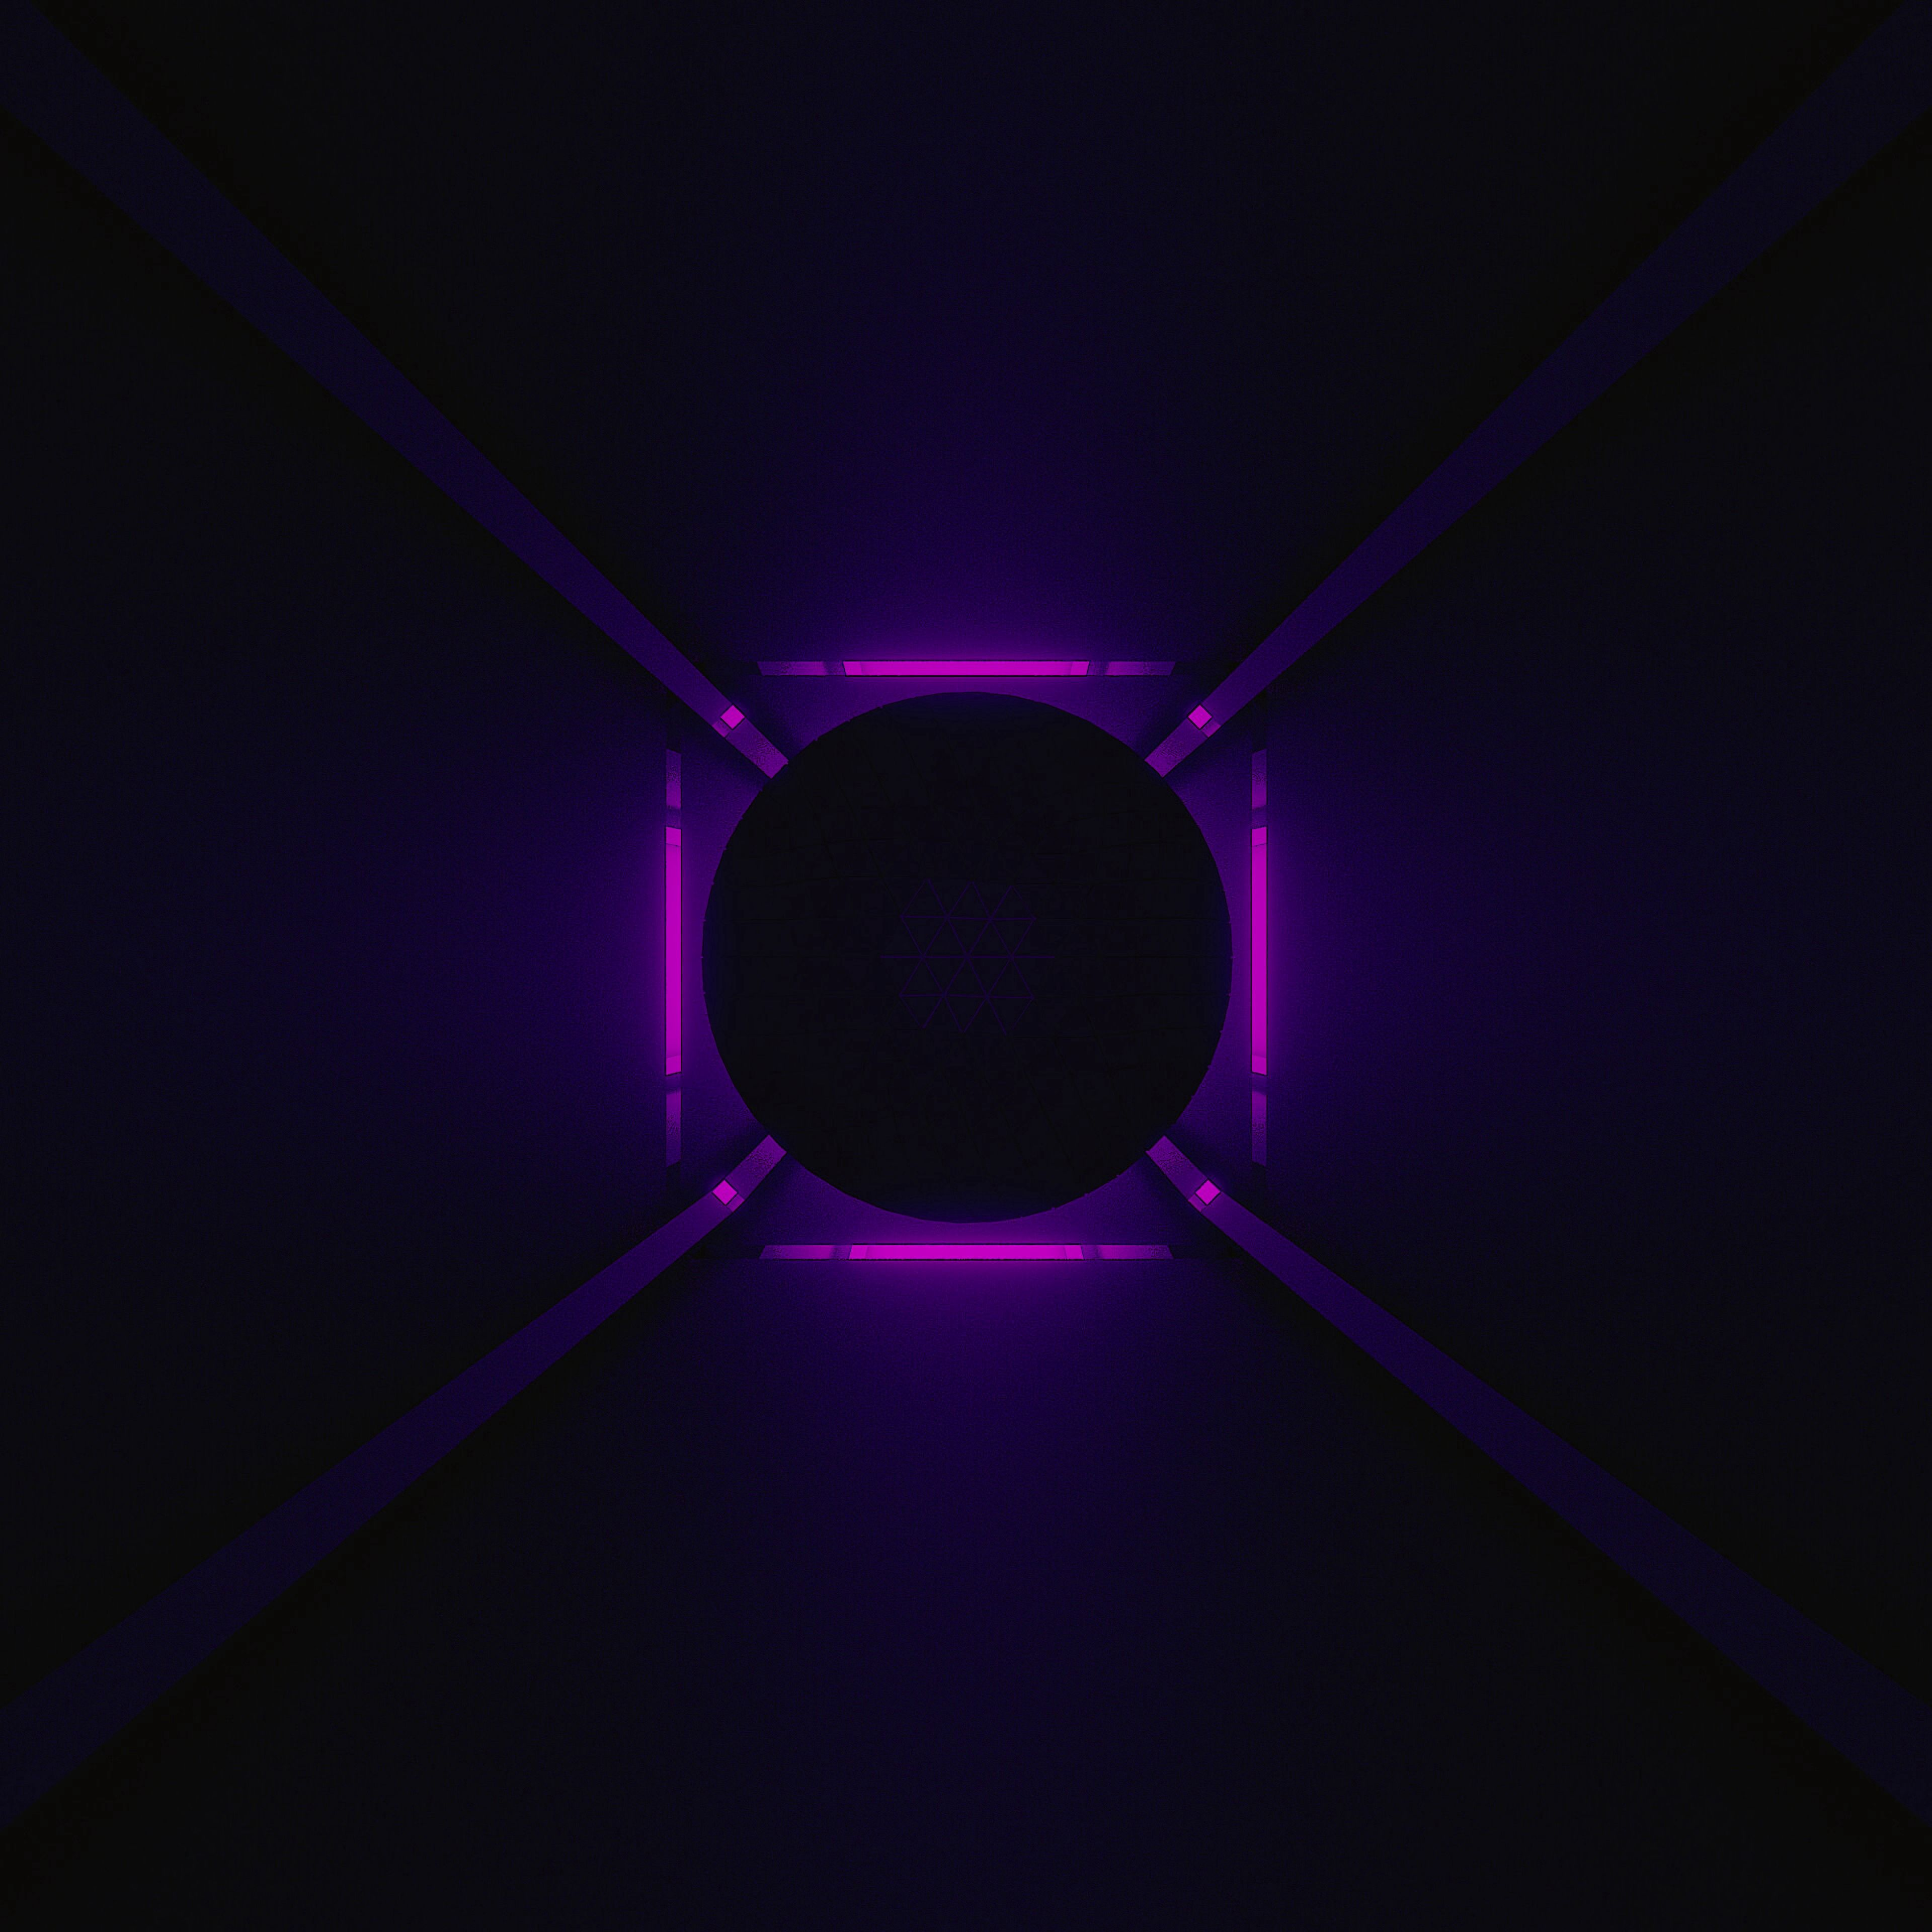 103090 download wallpaper Dark, Ball, Neon, Backlight, Illumination, Purple, Violet screensavers and pictures for free